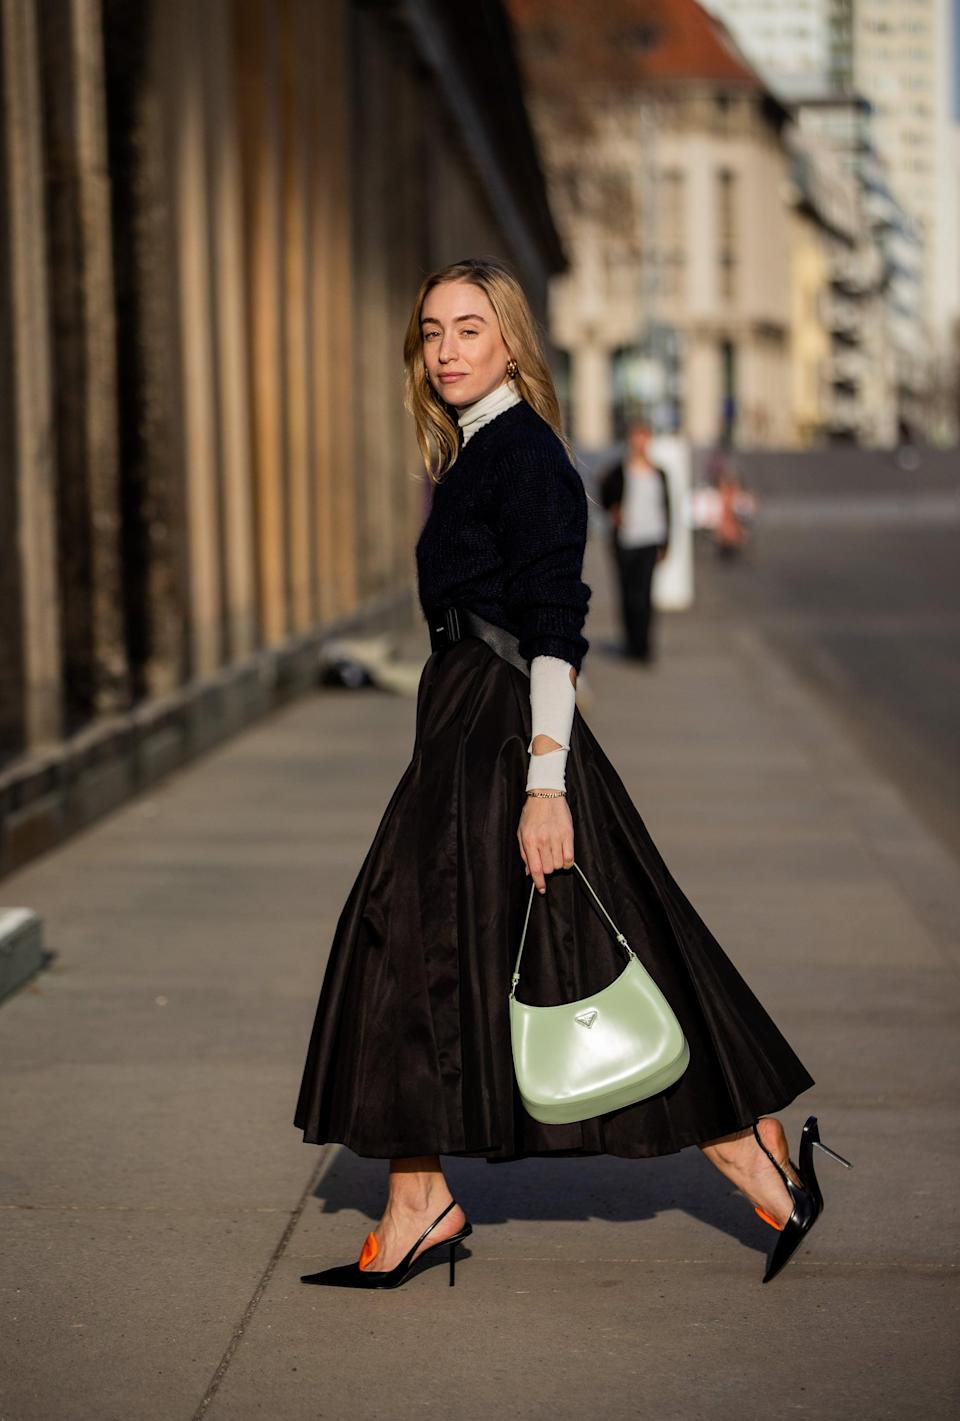 <p>We've seen so much streetwear and casual clothing lately, it's really refreshing to see a take on a classic, elegant look.</p>